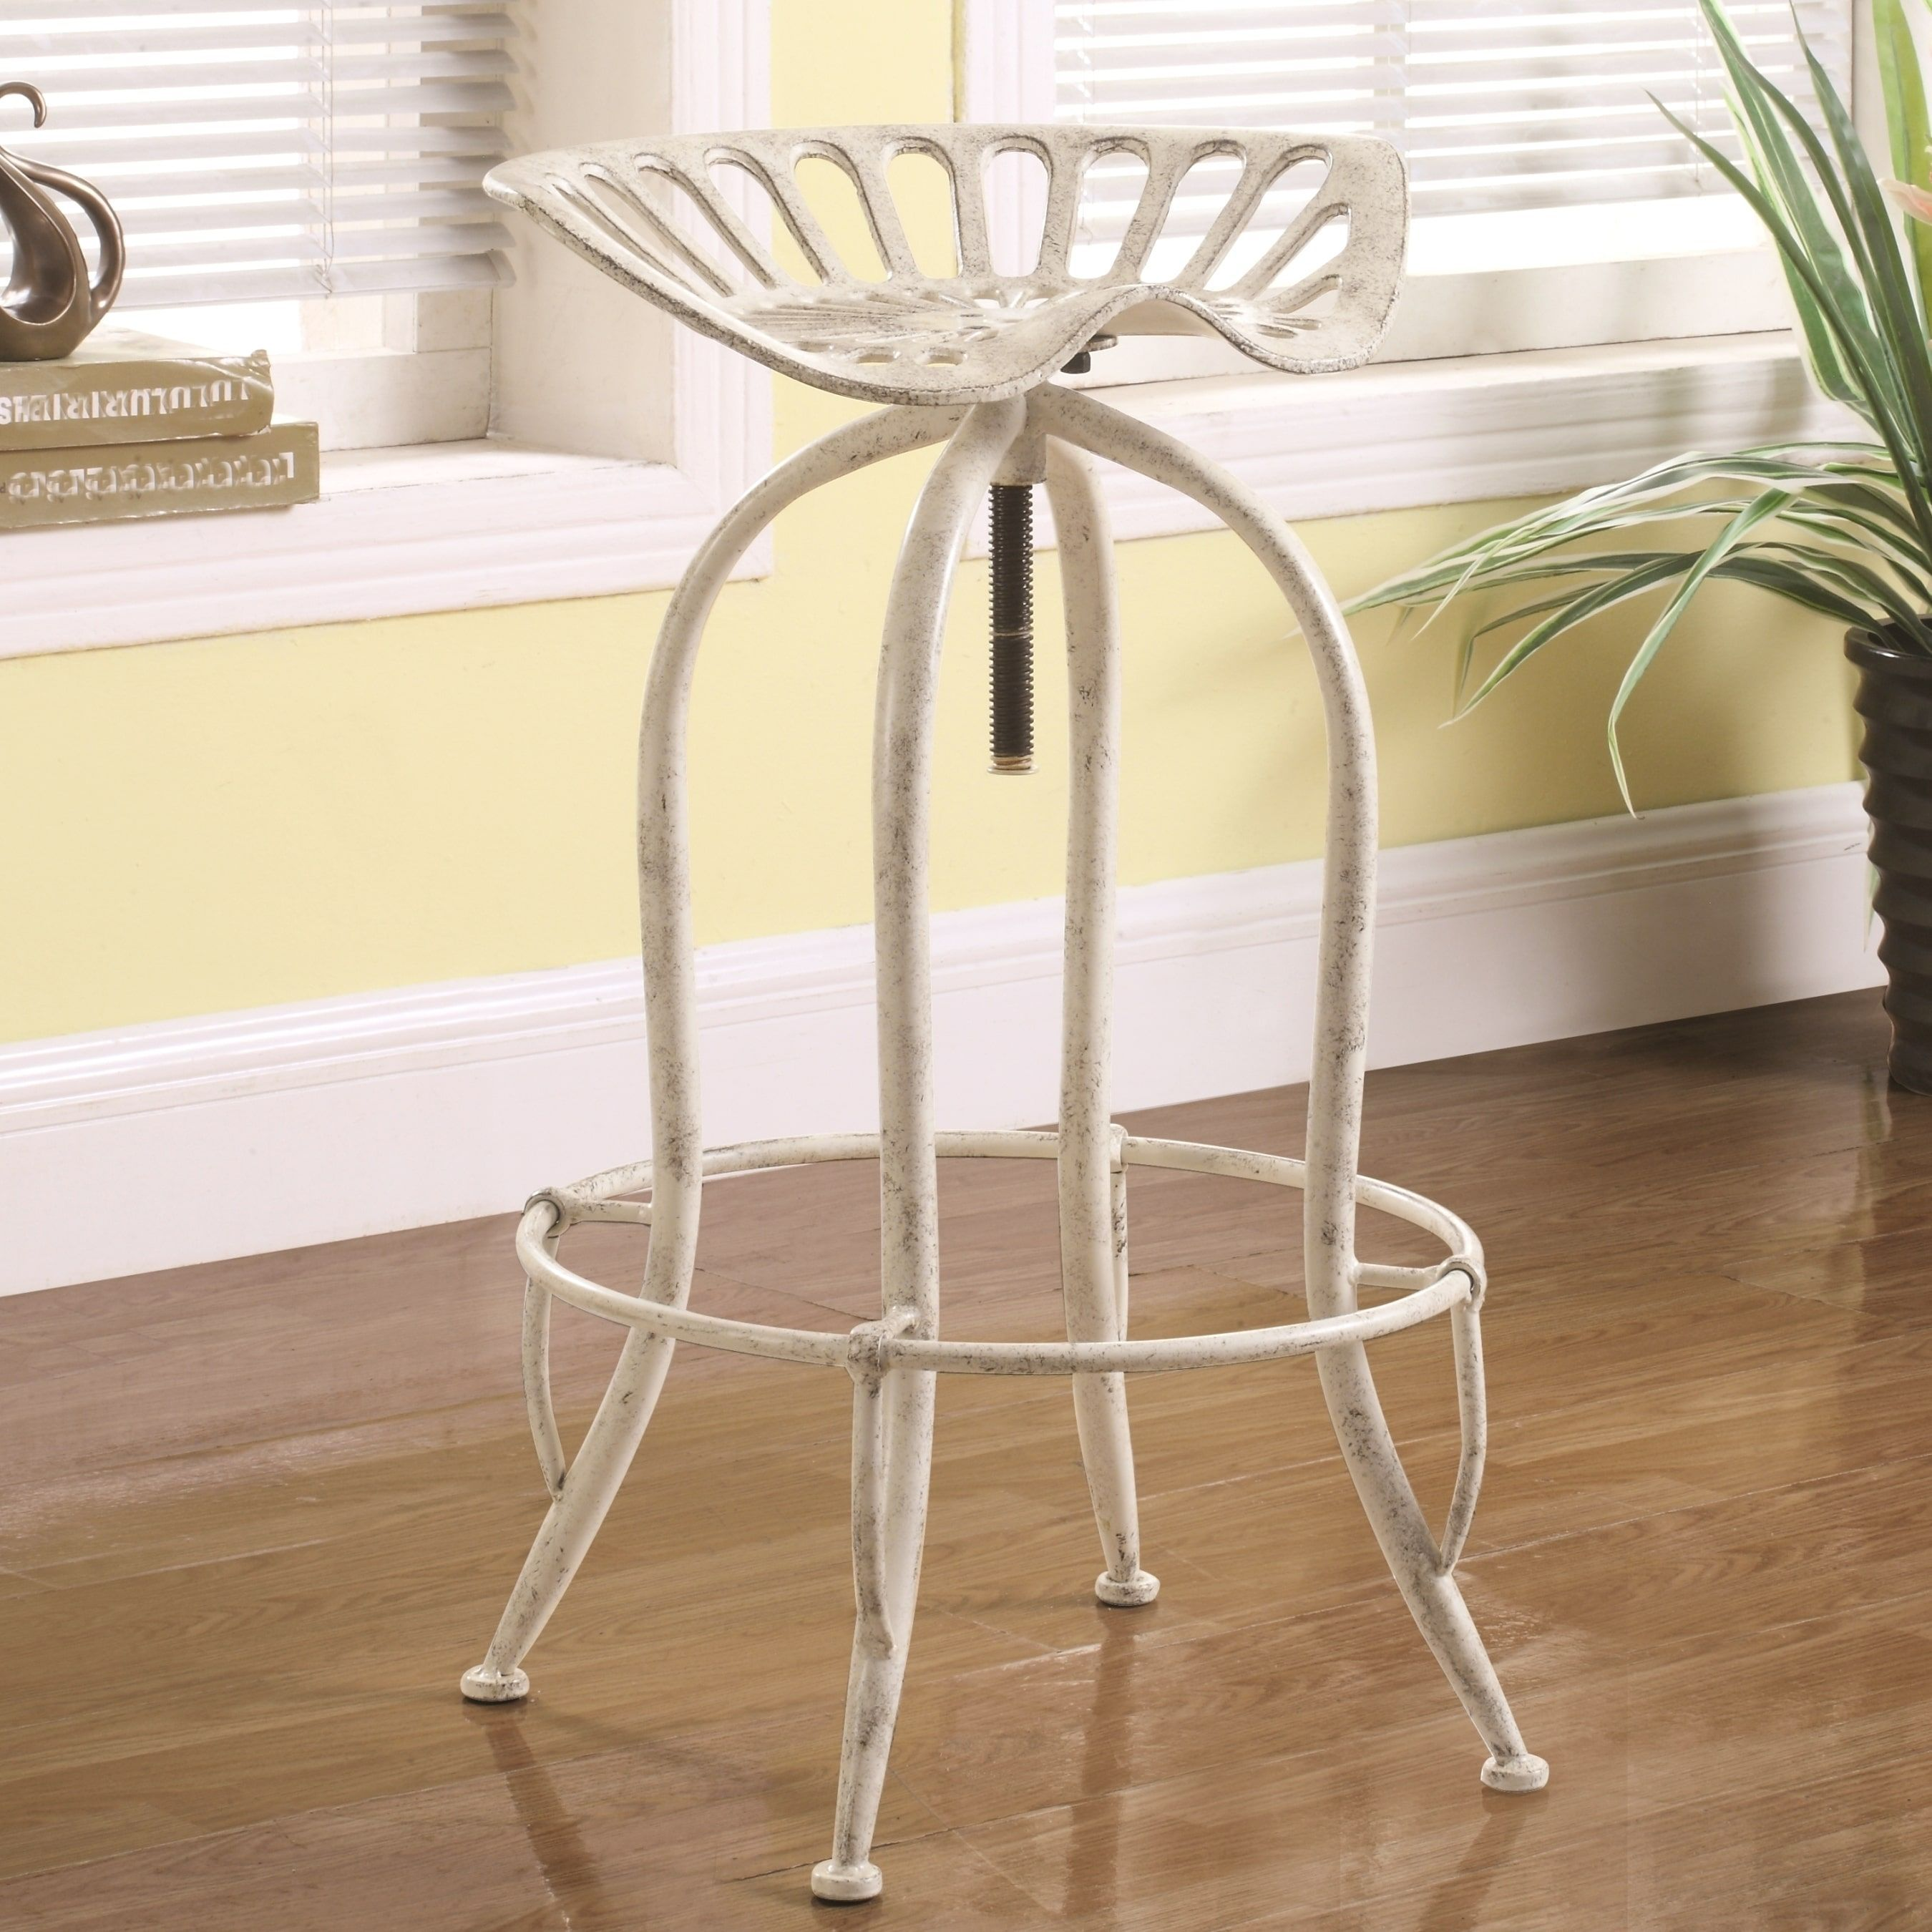 shipping home roman of stool free product industrial lumisource overstock counter garden marshalls stools bar set today